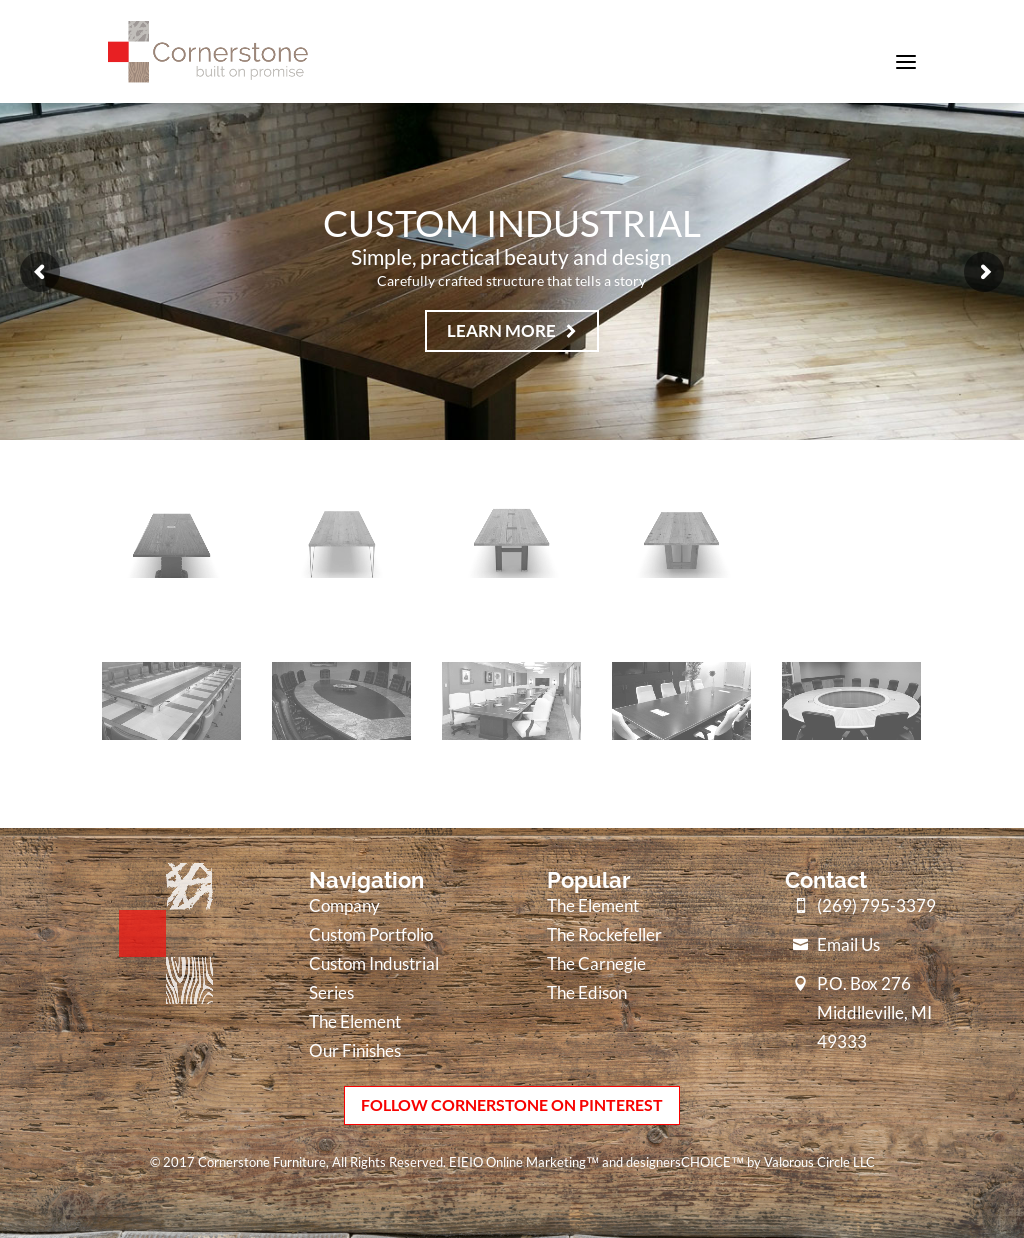 Cornerstone Furniture Company Profile Revenue Employees Funding News And Acquisitions